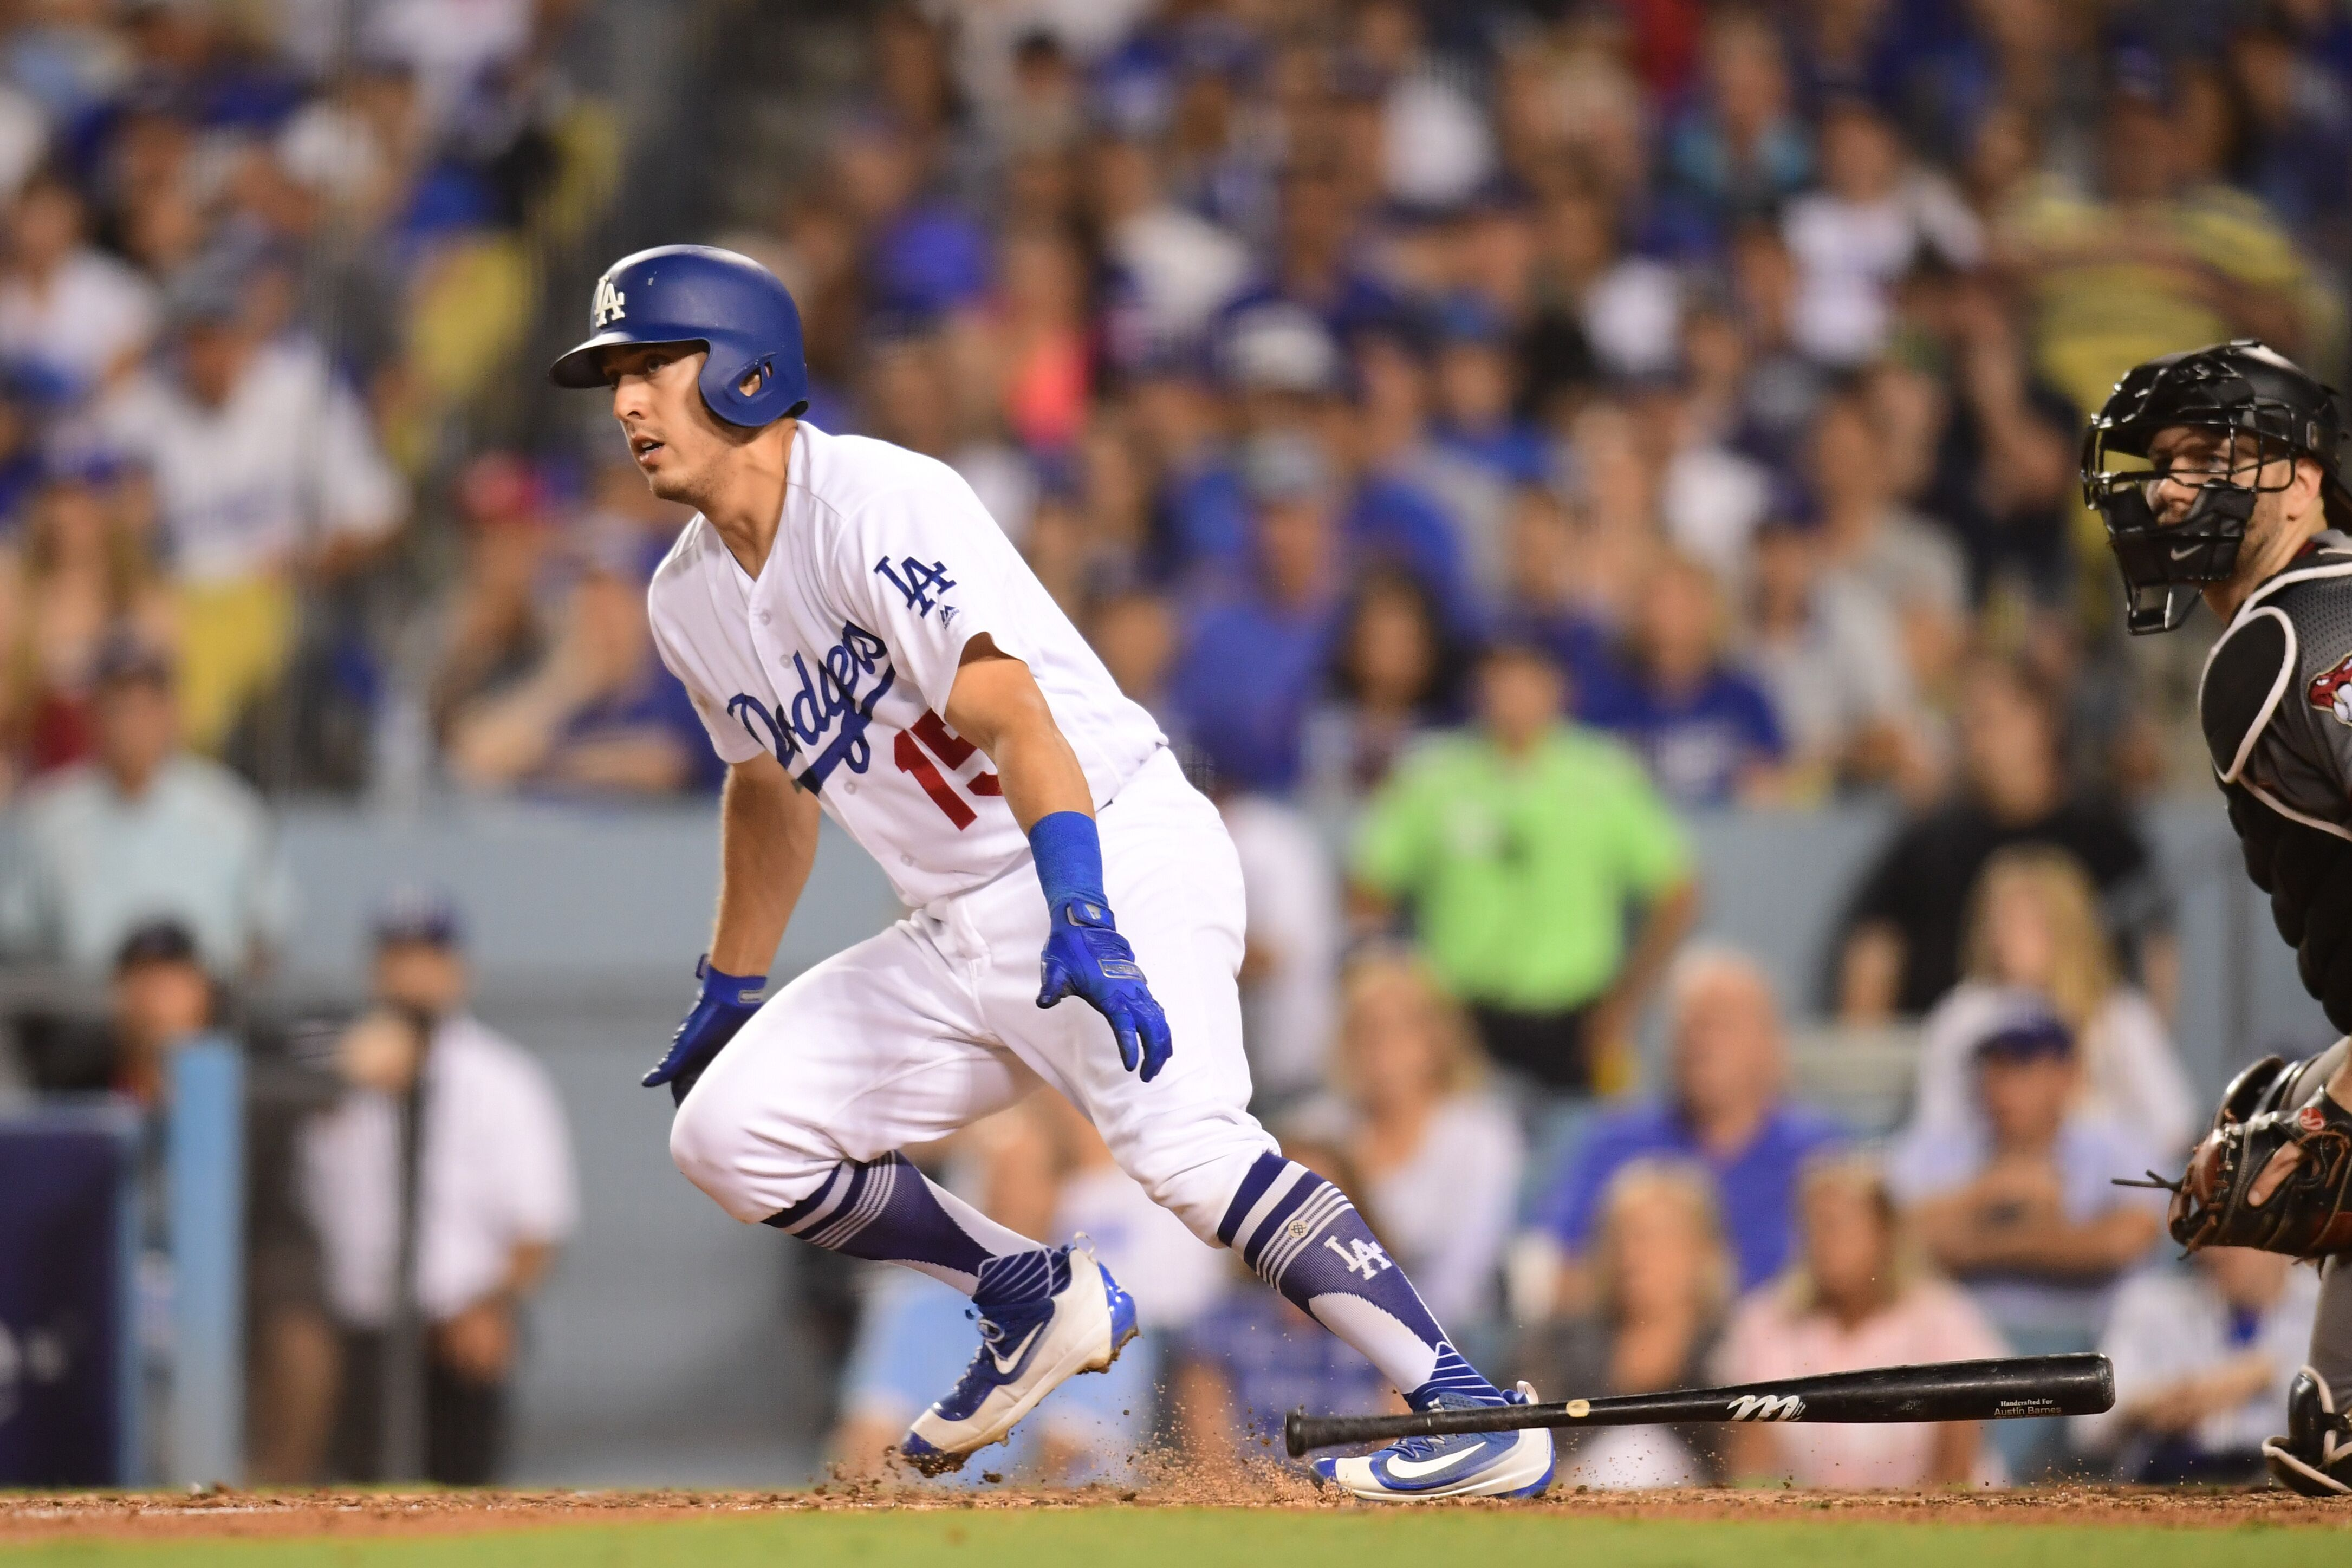 Image result for austin barnes double nlds game 2